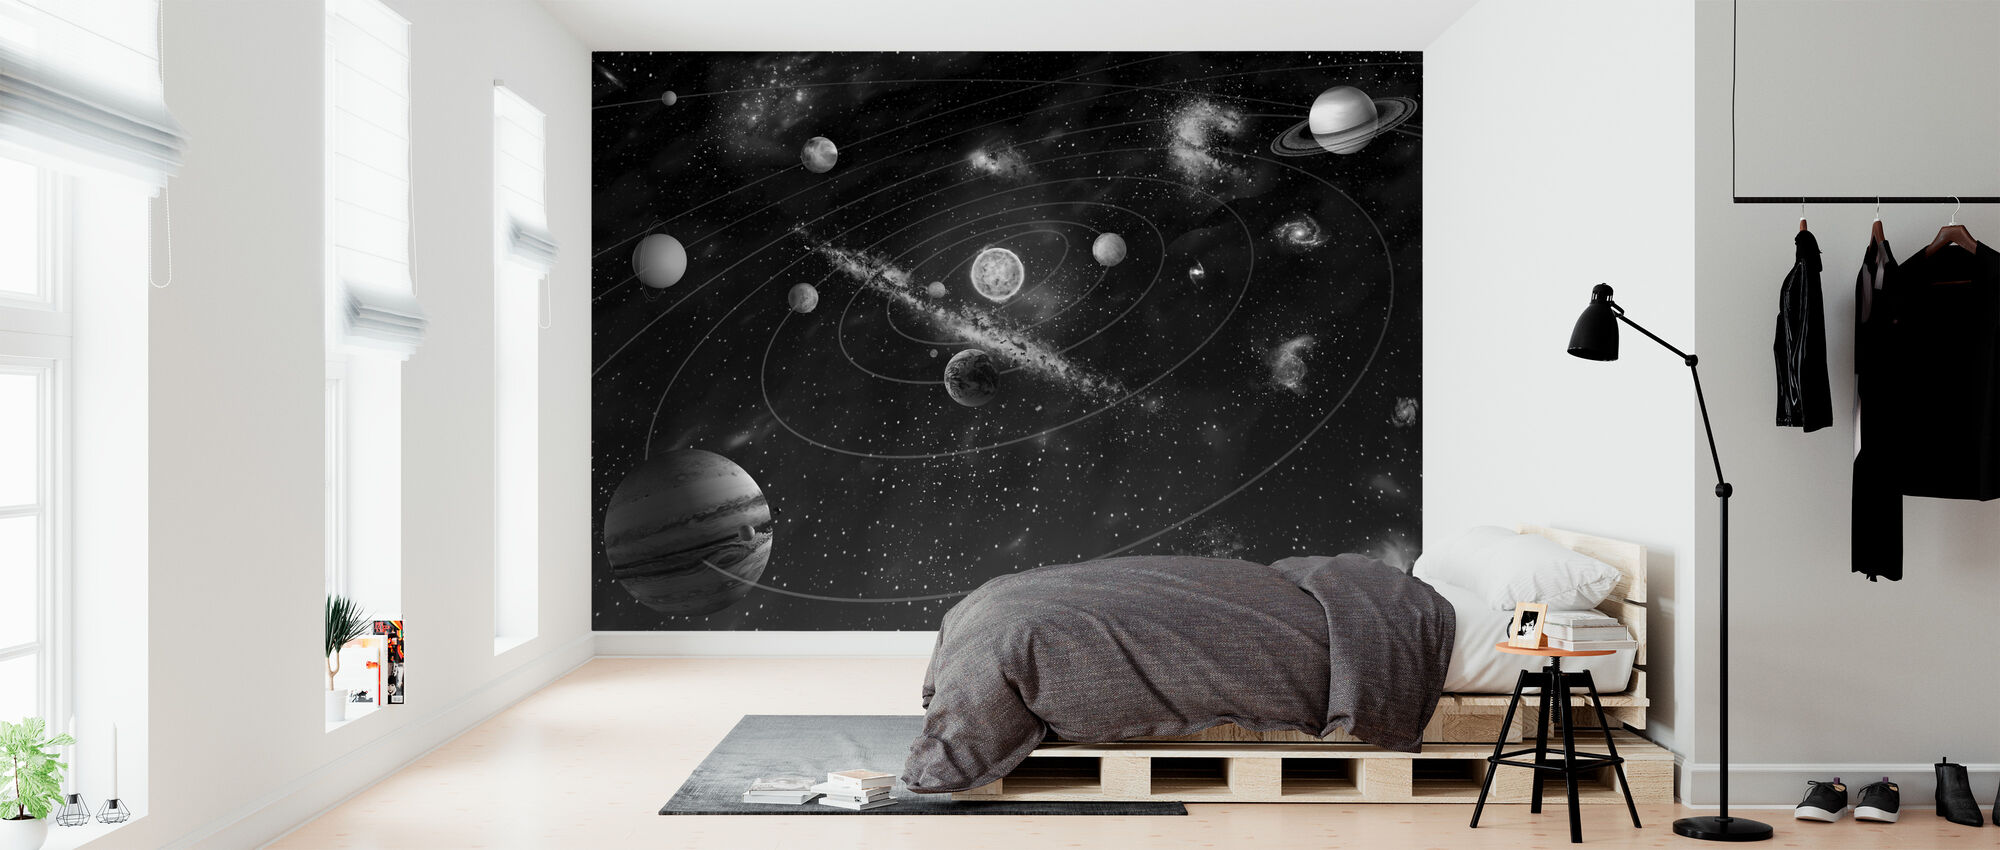 Solar System - b/w - Wallpaper - Bedroom